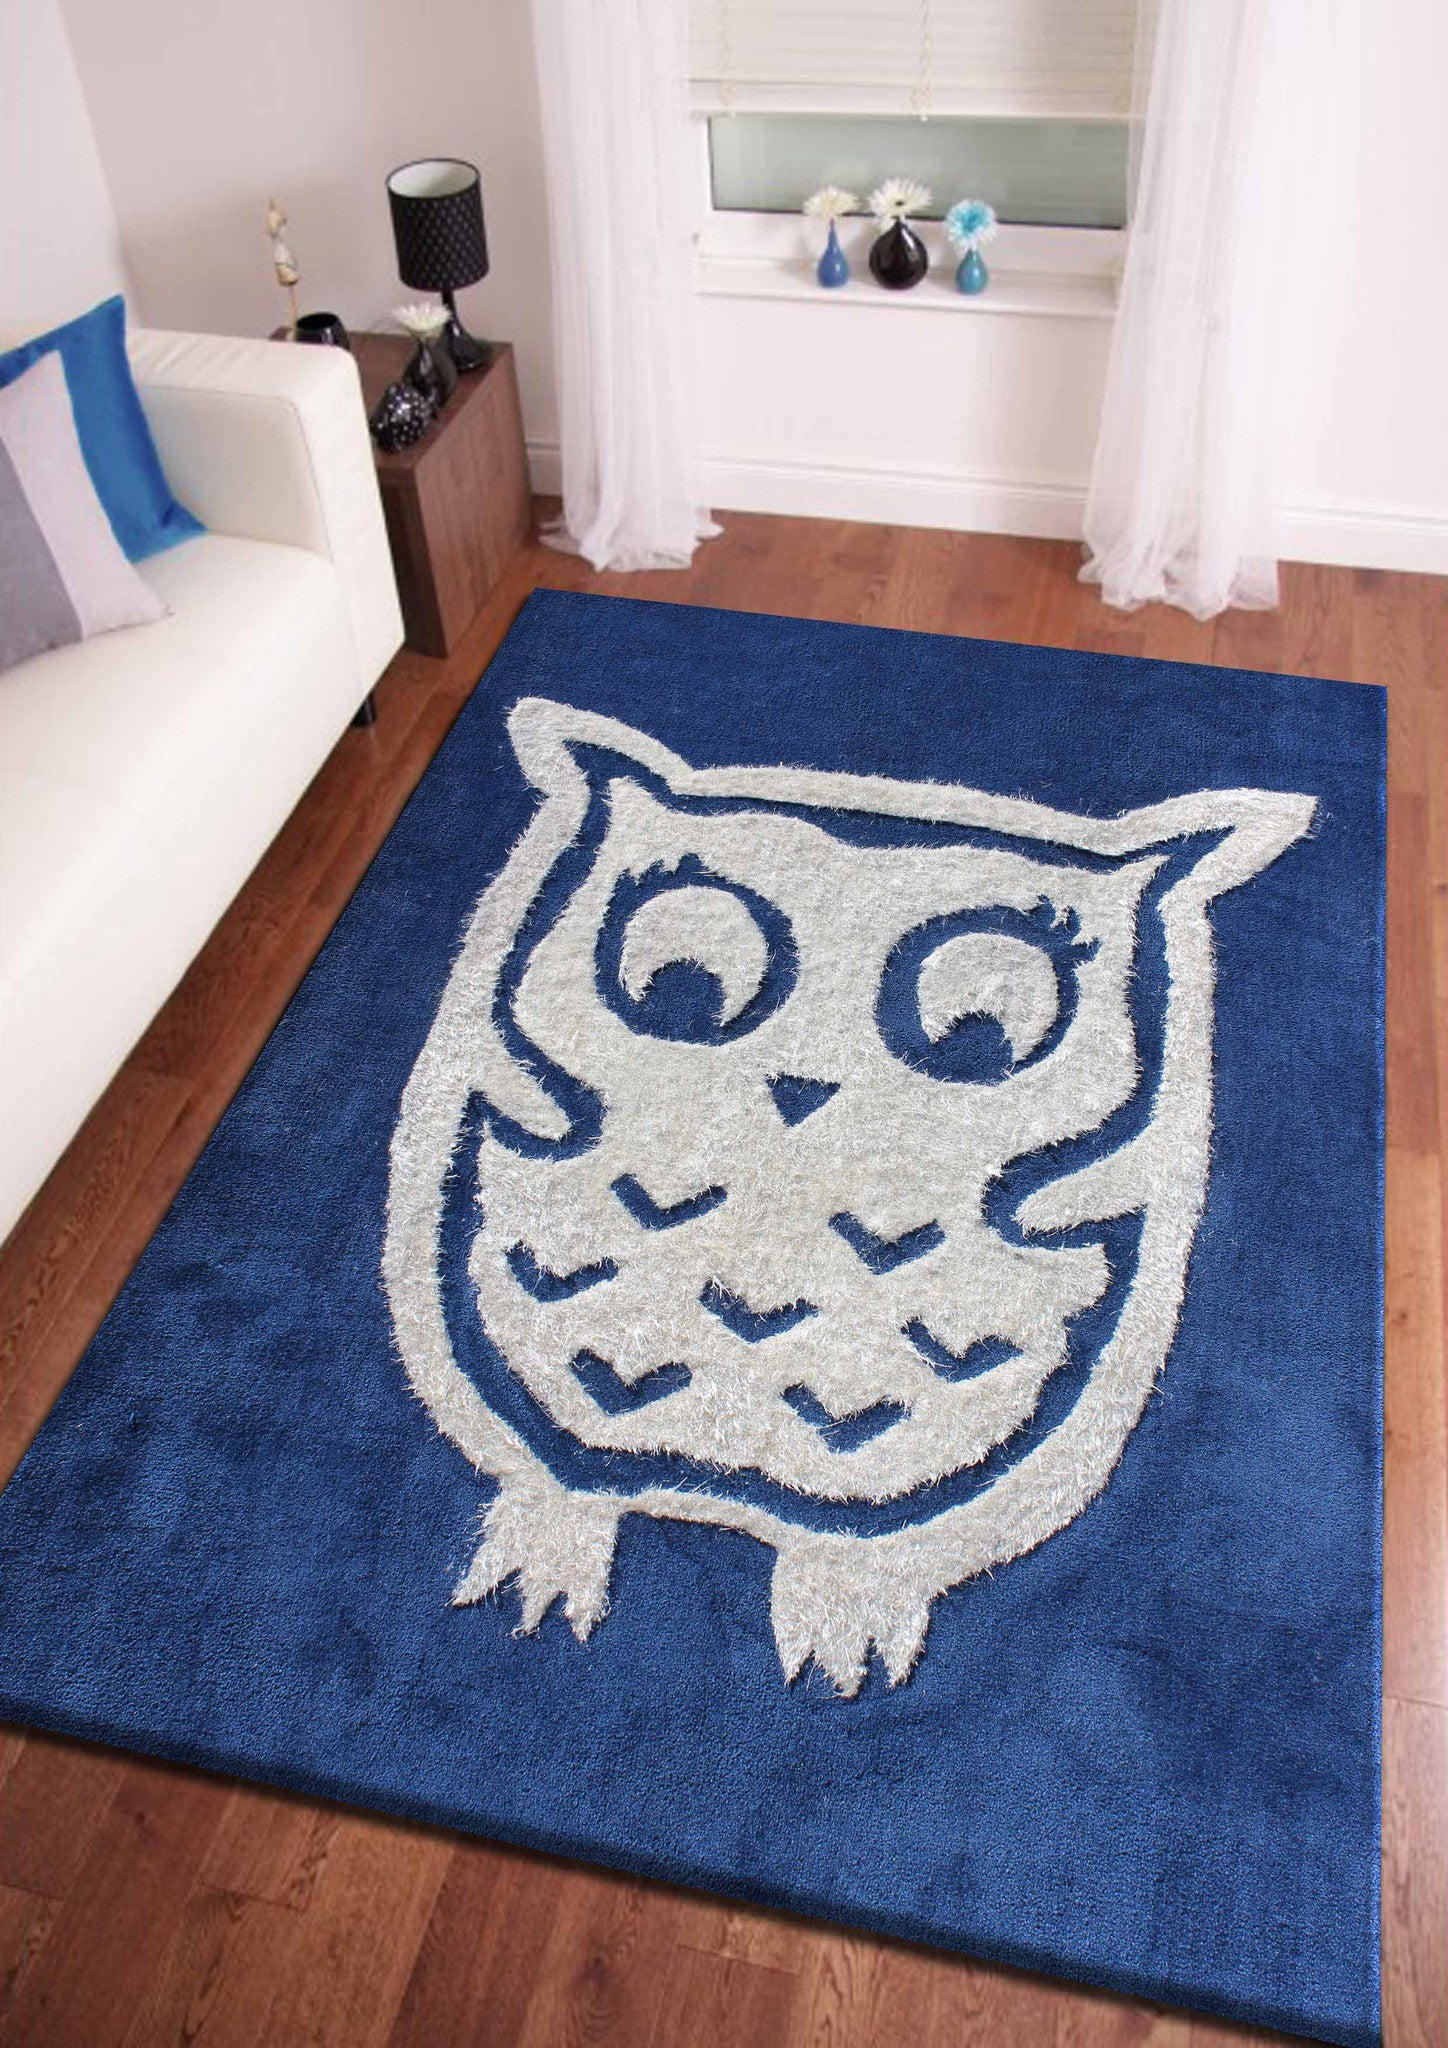 4 39 x 6 39 ft blue kids bedroom area rug with owl design for Rugs for kids bedrooms